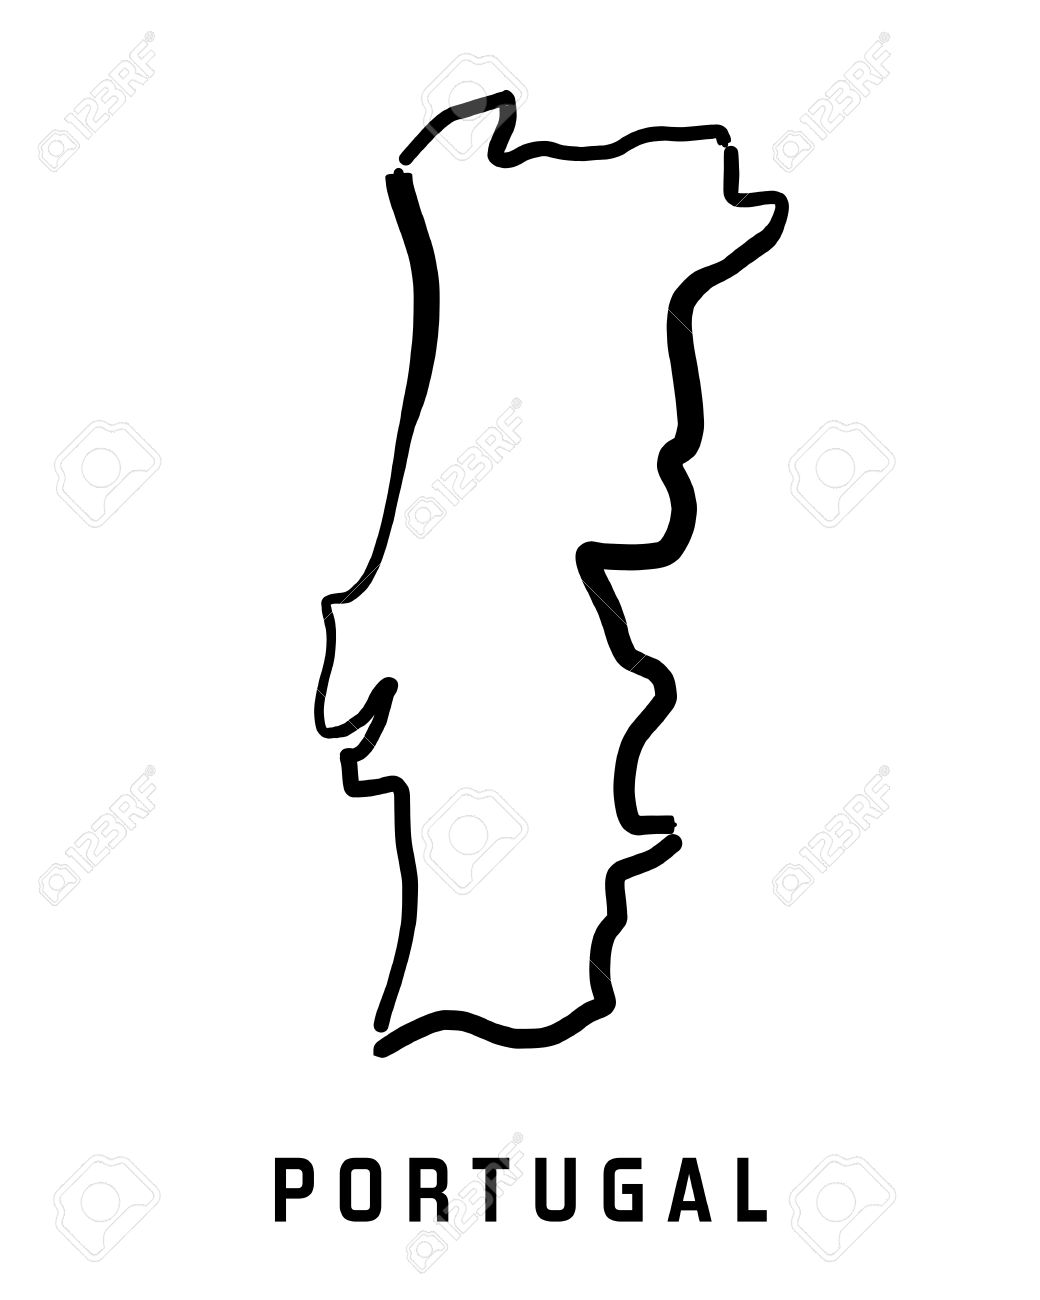 Portugal Black And White Clipart